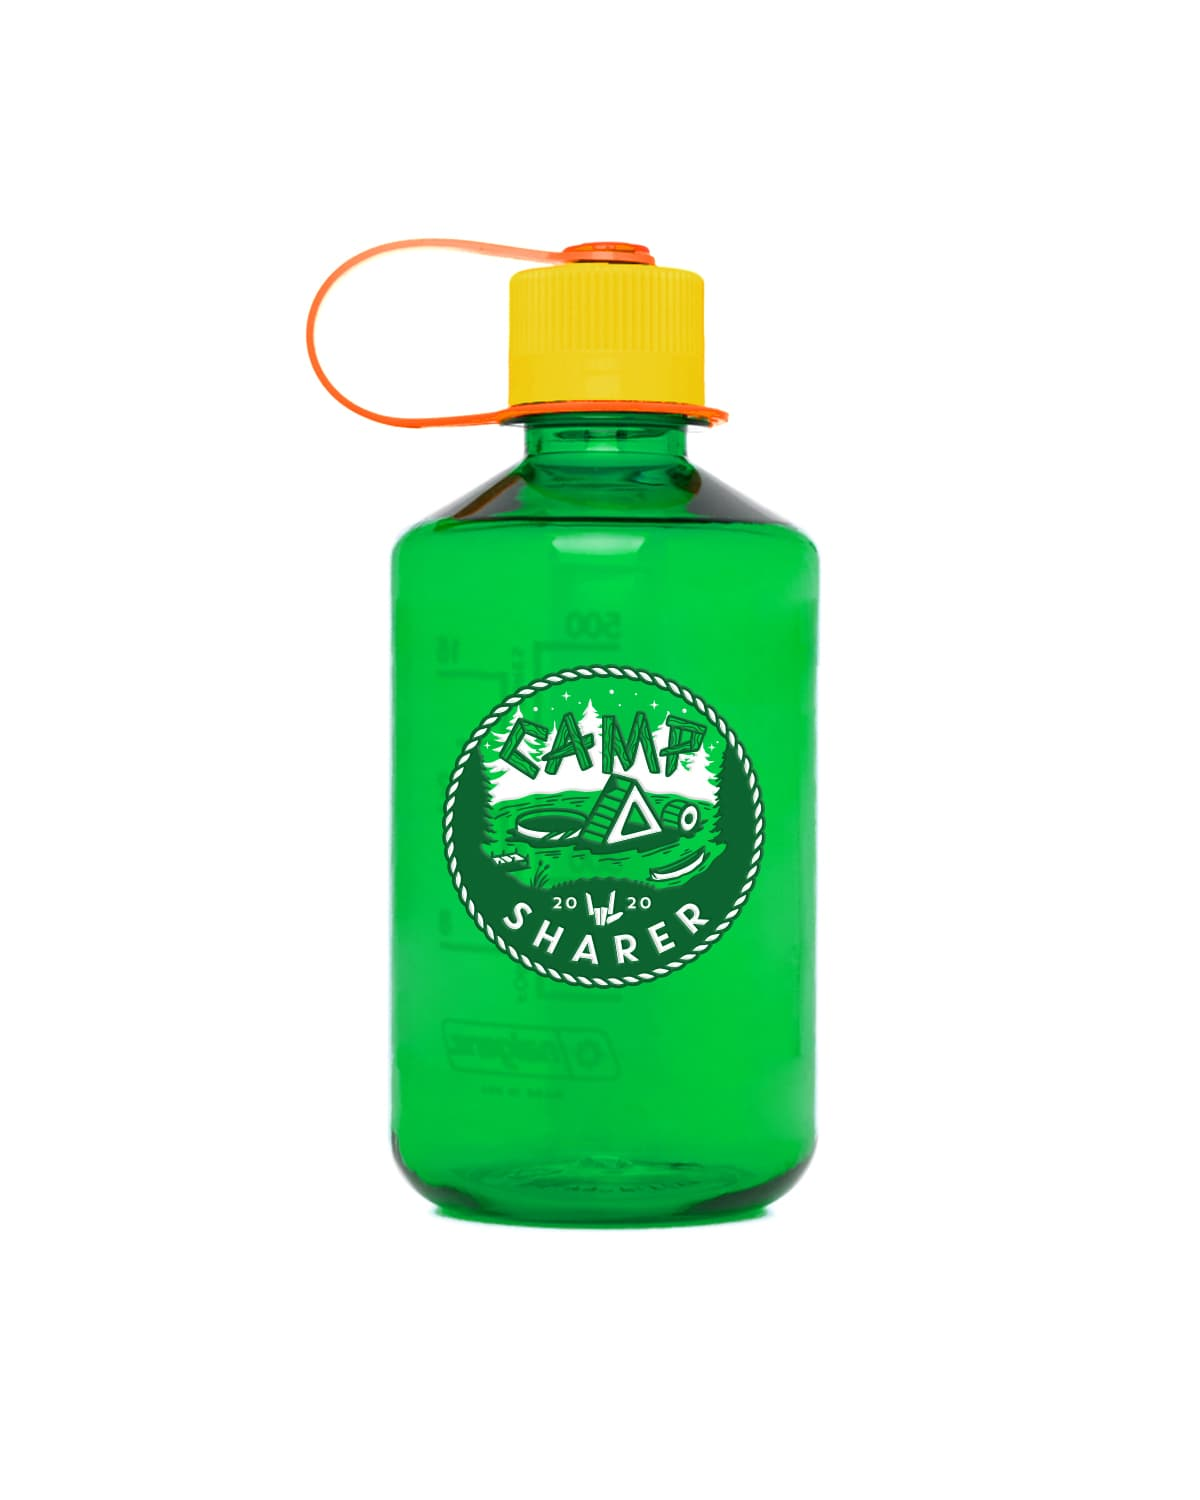 Camp Sharer Badge Nalgene